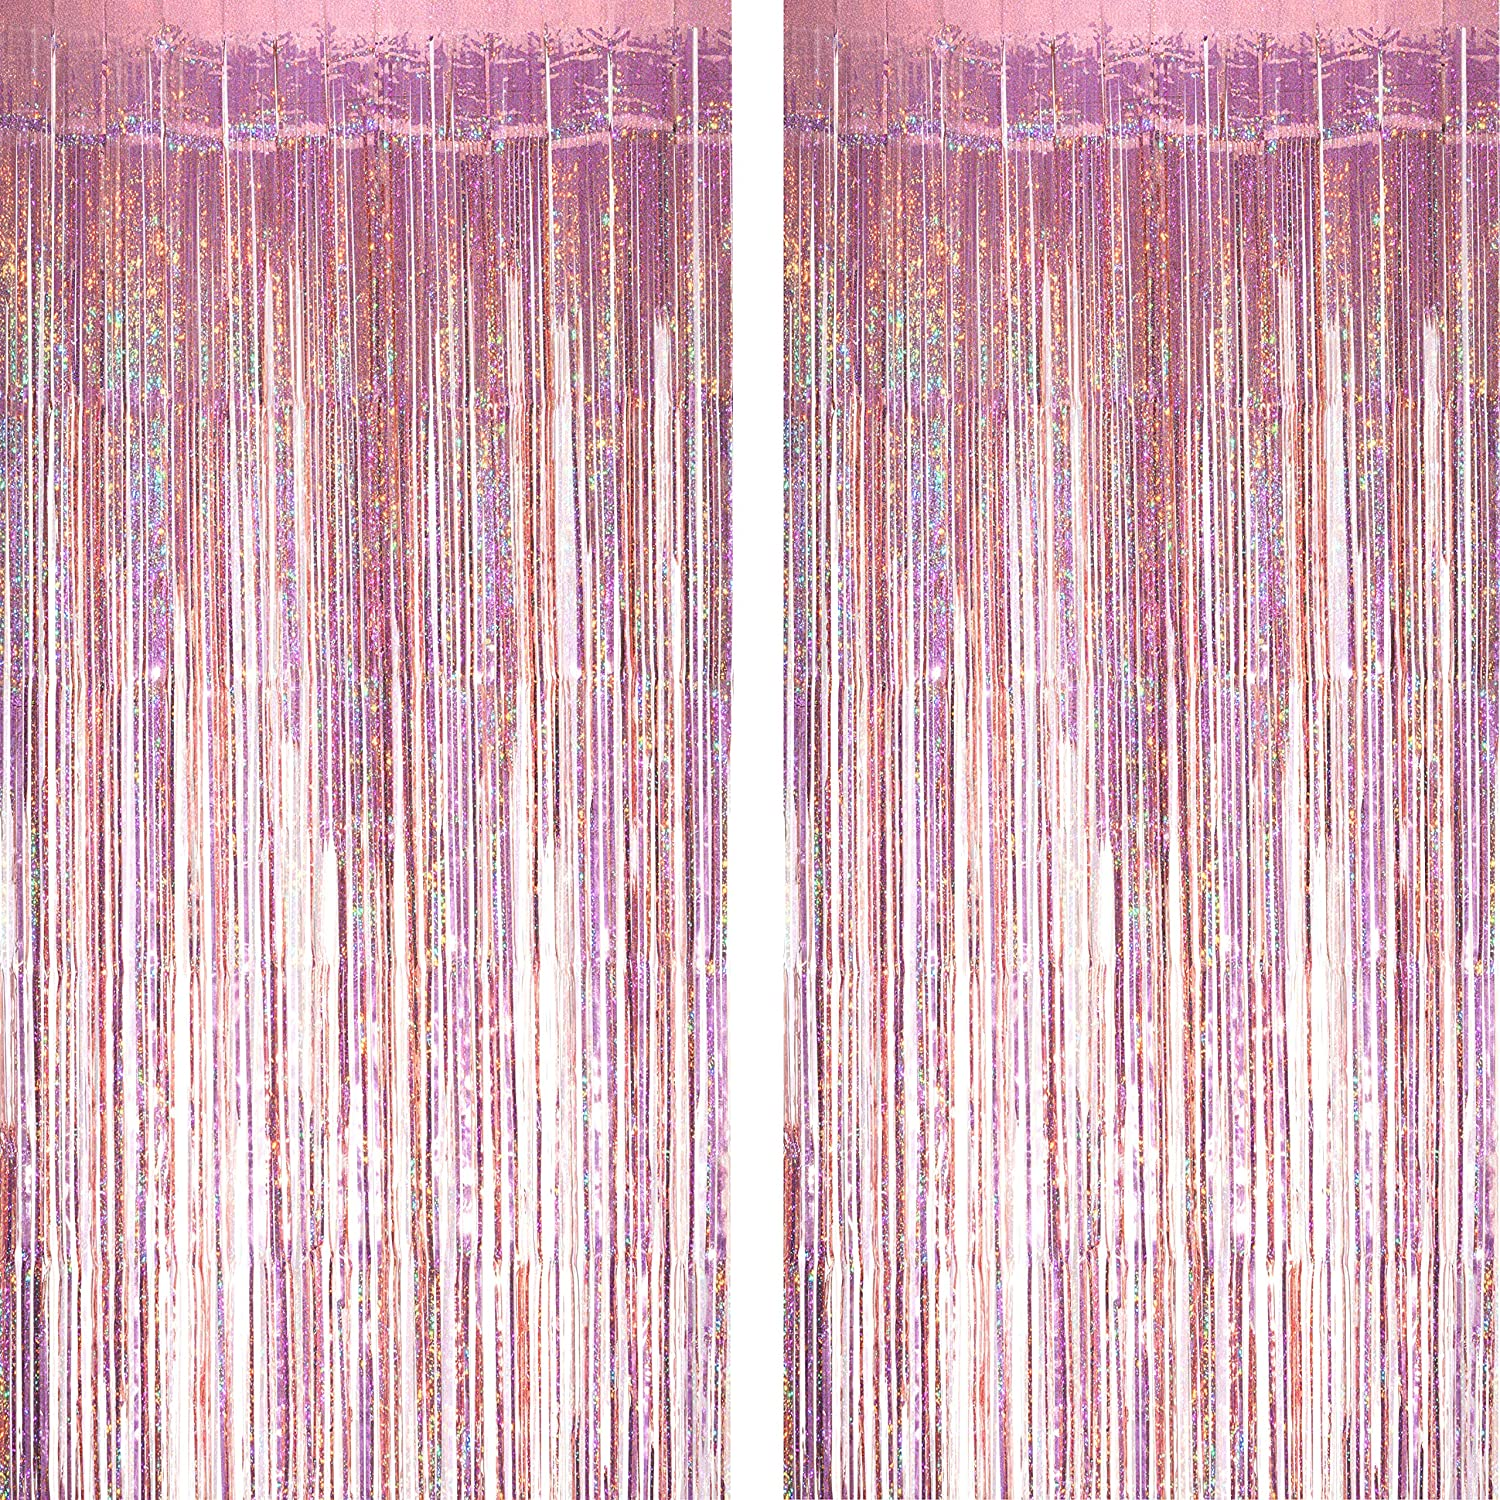 Pink Tinsel Foil Fringe Curtains - Under The Sea Baby Shower Birthday Photo Backdrops Bachelorette Wedding Engagement Party Decor Photo Booth Props Backdrops Decorations,2pc